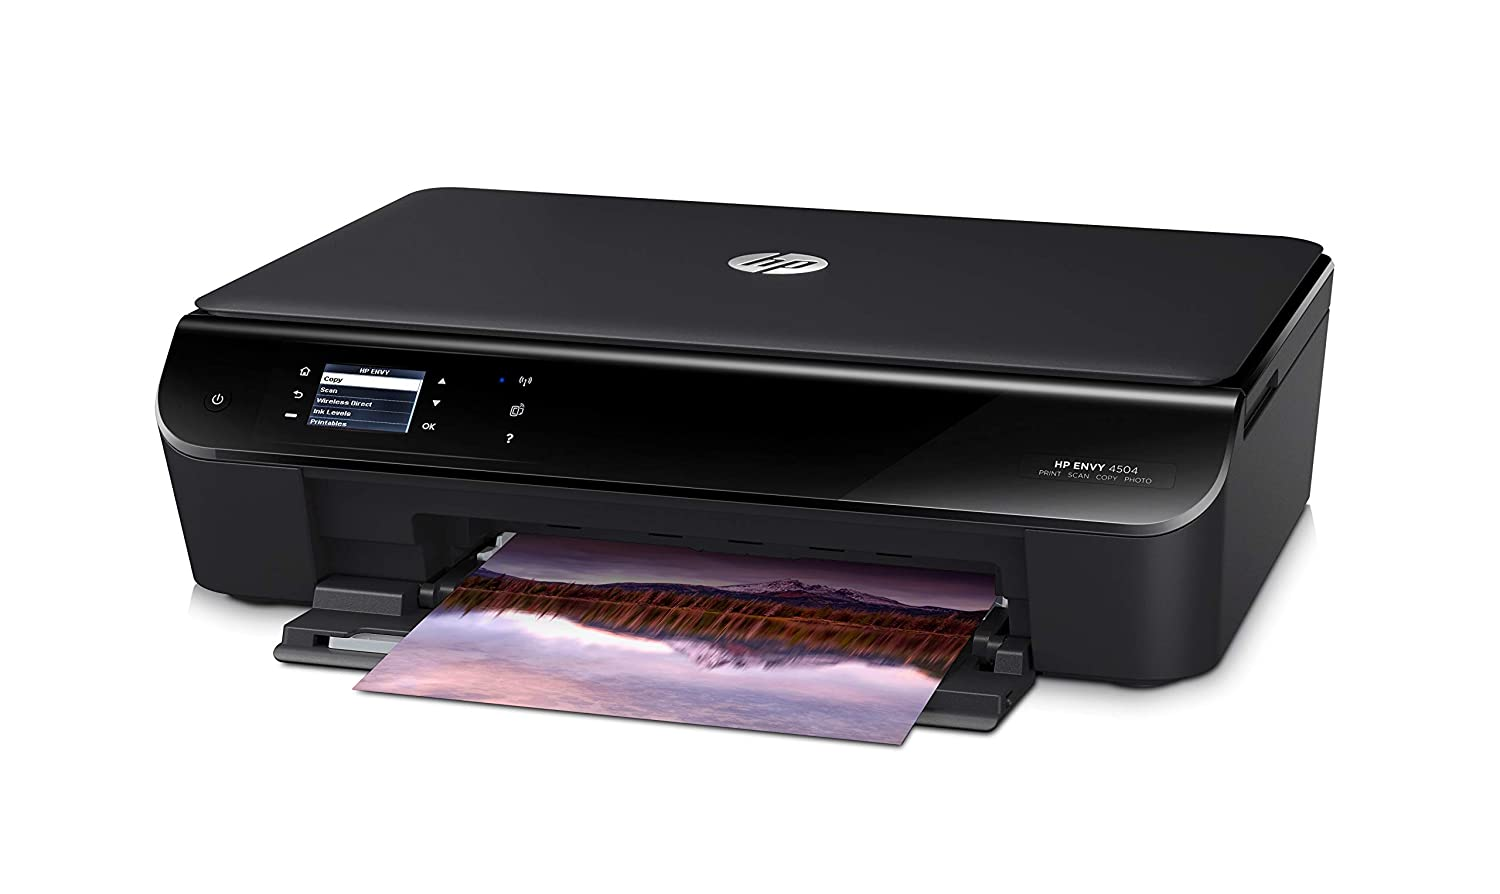 HP ENVY 4504 e-All-in-One Printer - Impresora multifunción: Amazon ...